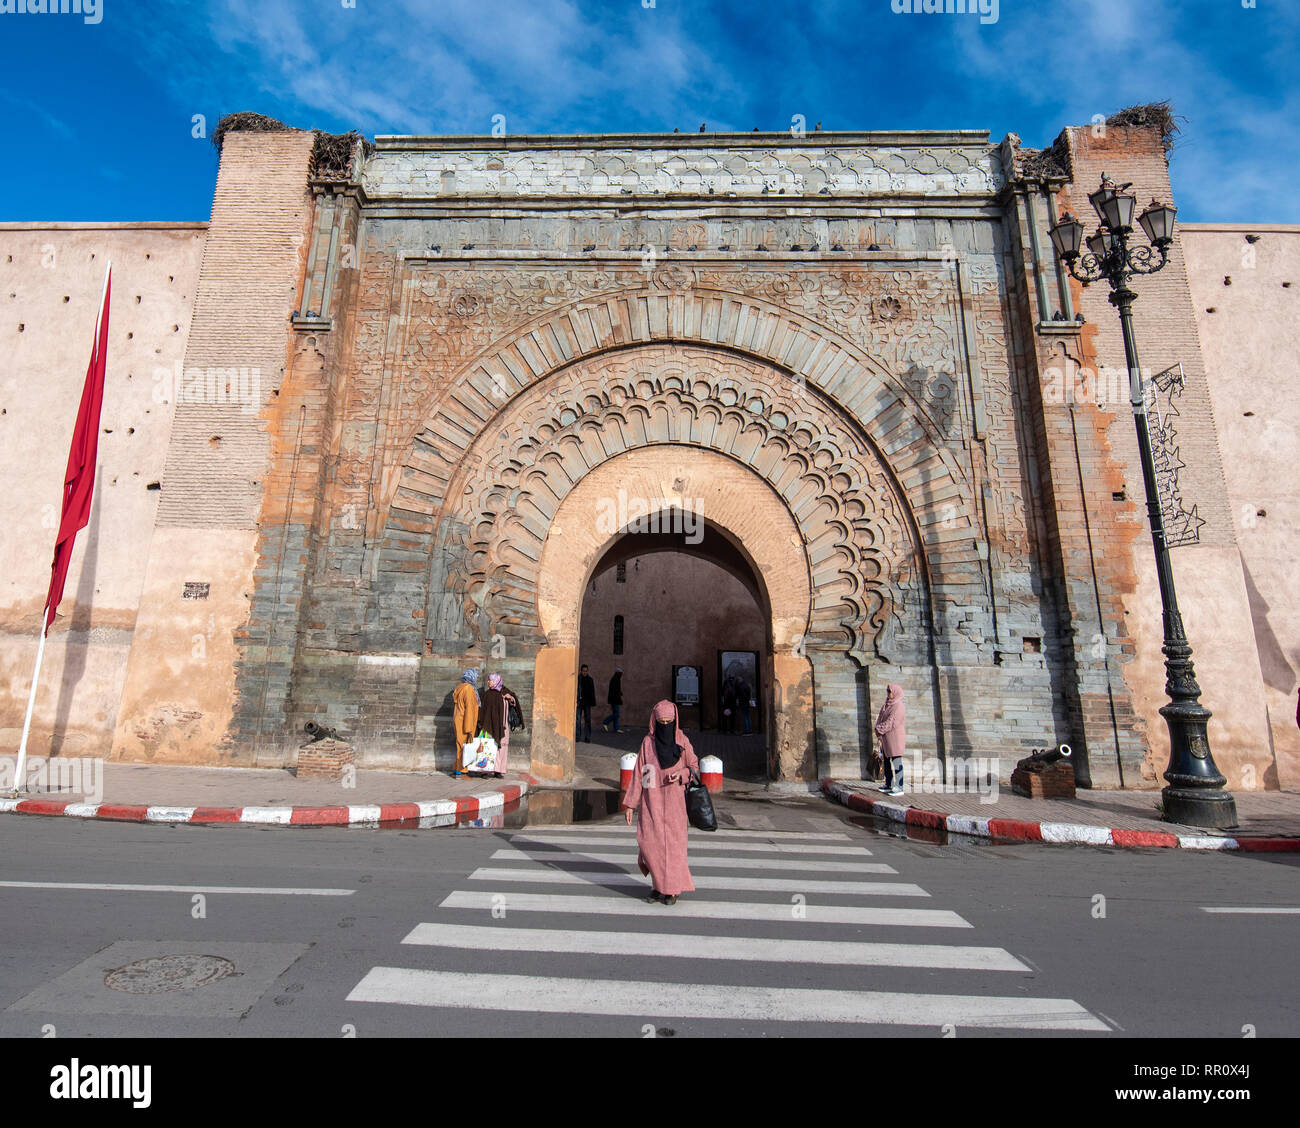 Arab woman crossing a pedestrian path in front of City gate Bab Agnaou . Entrance to the old city - the medina of Marrakech, Morocco Stock Photo